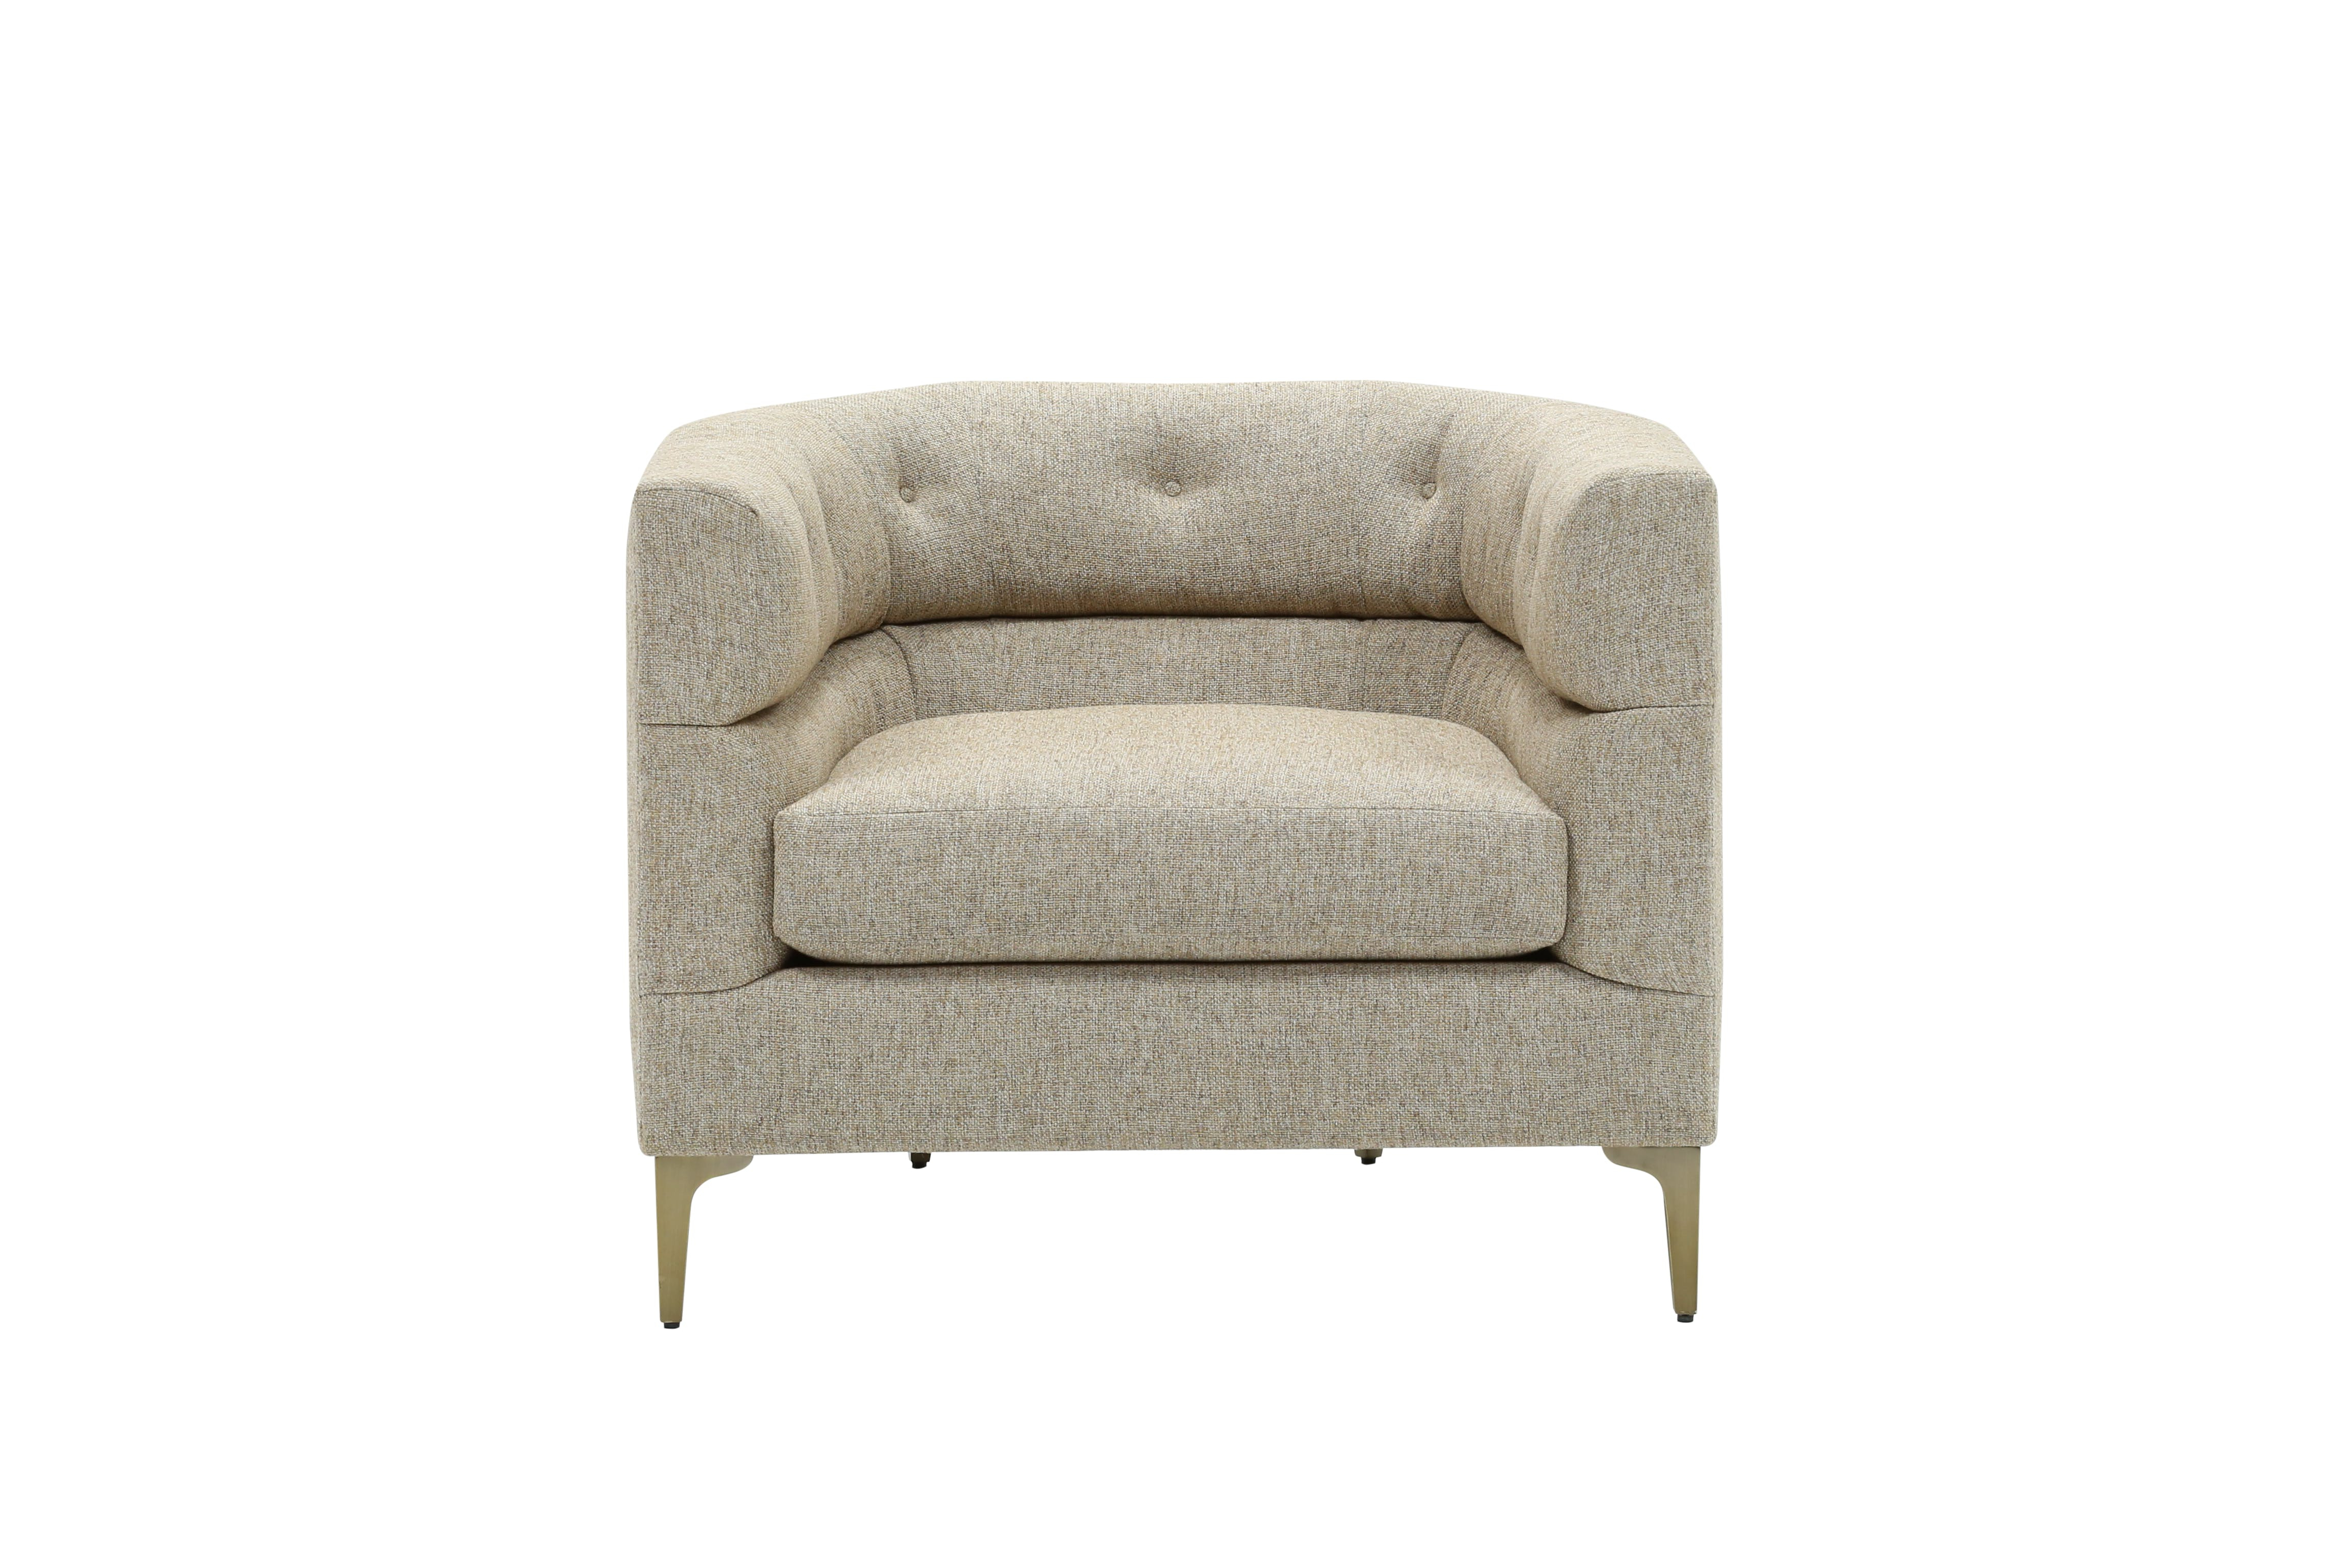 Matteo Arm Sofa Chairs By Nate Berkus And Jeremiah Brent Within Favorite Nate Berkus Just Launched A Home Collection With Hubby Jeremiah (View 10 of 20)